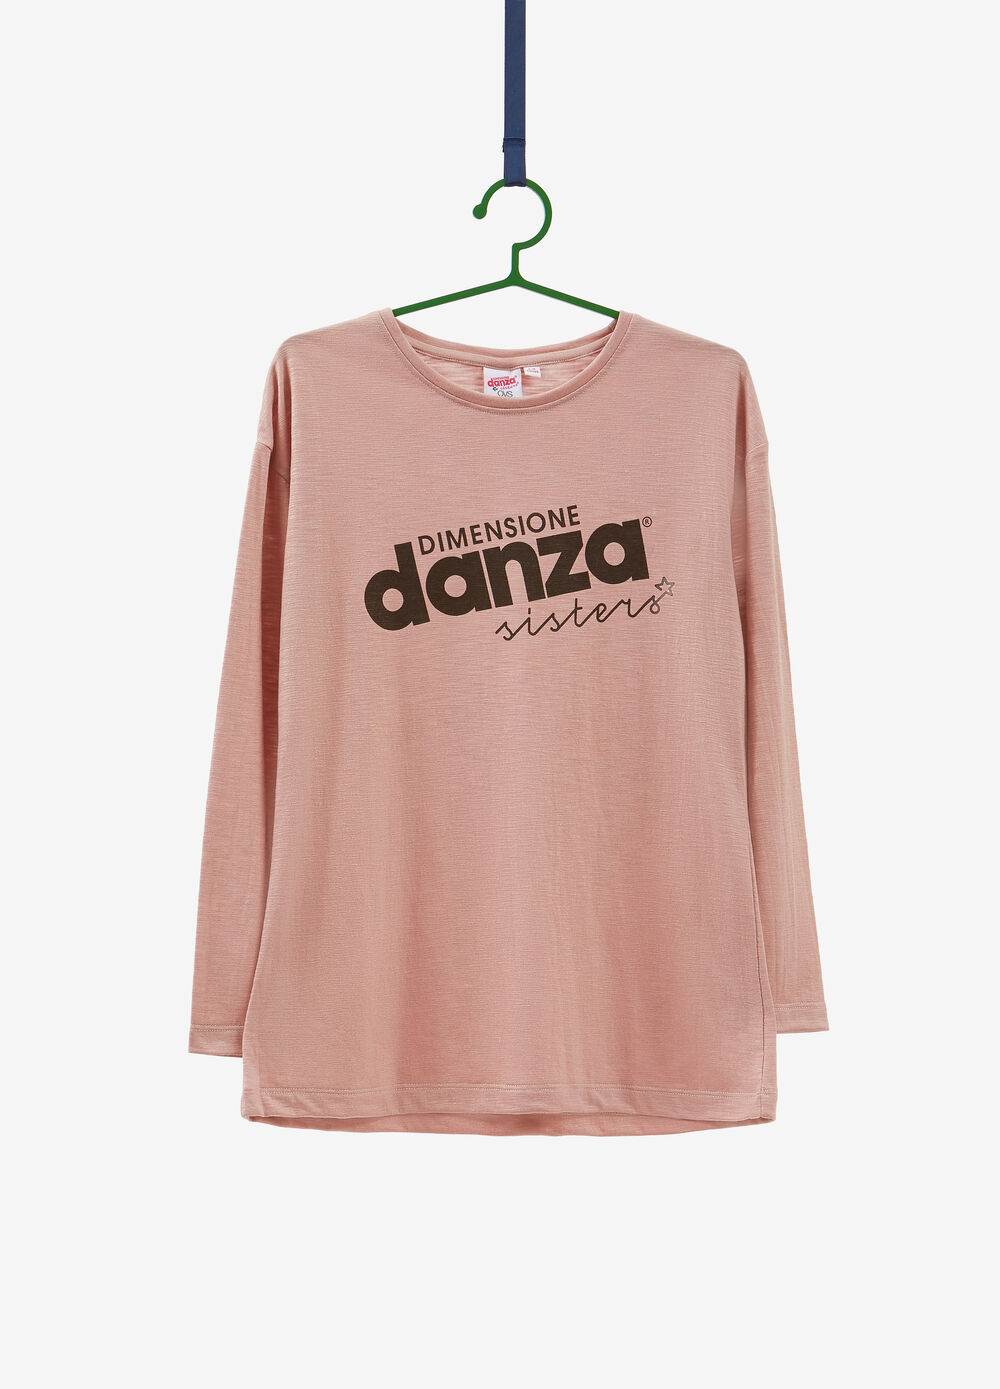 Dimensione Danza 100% cotton T-shirt